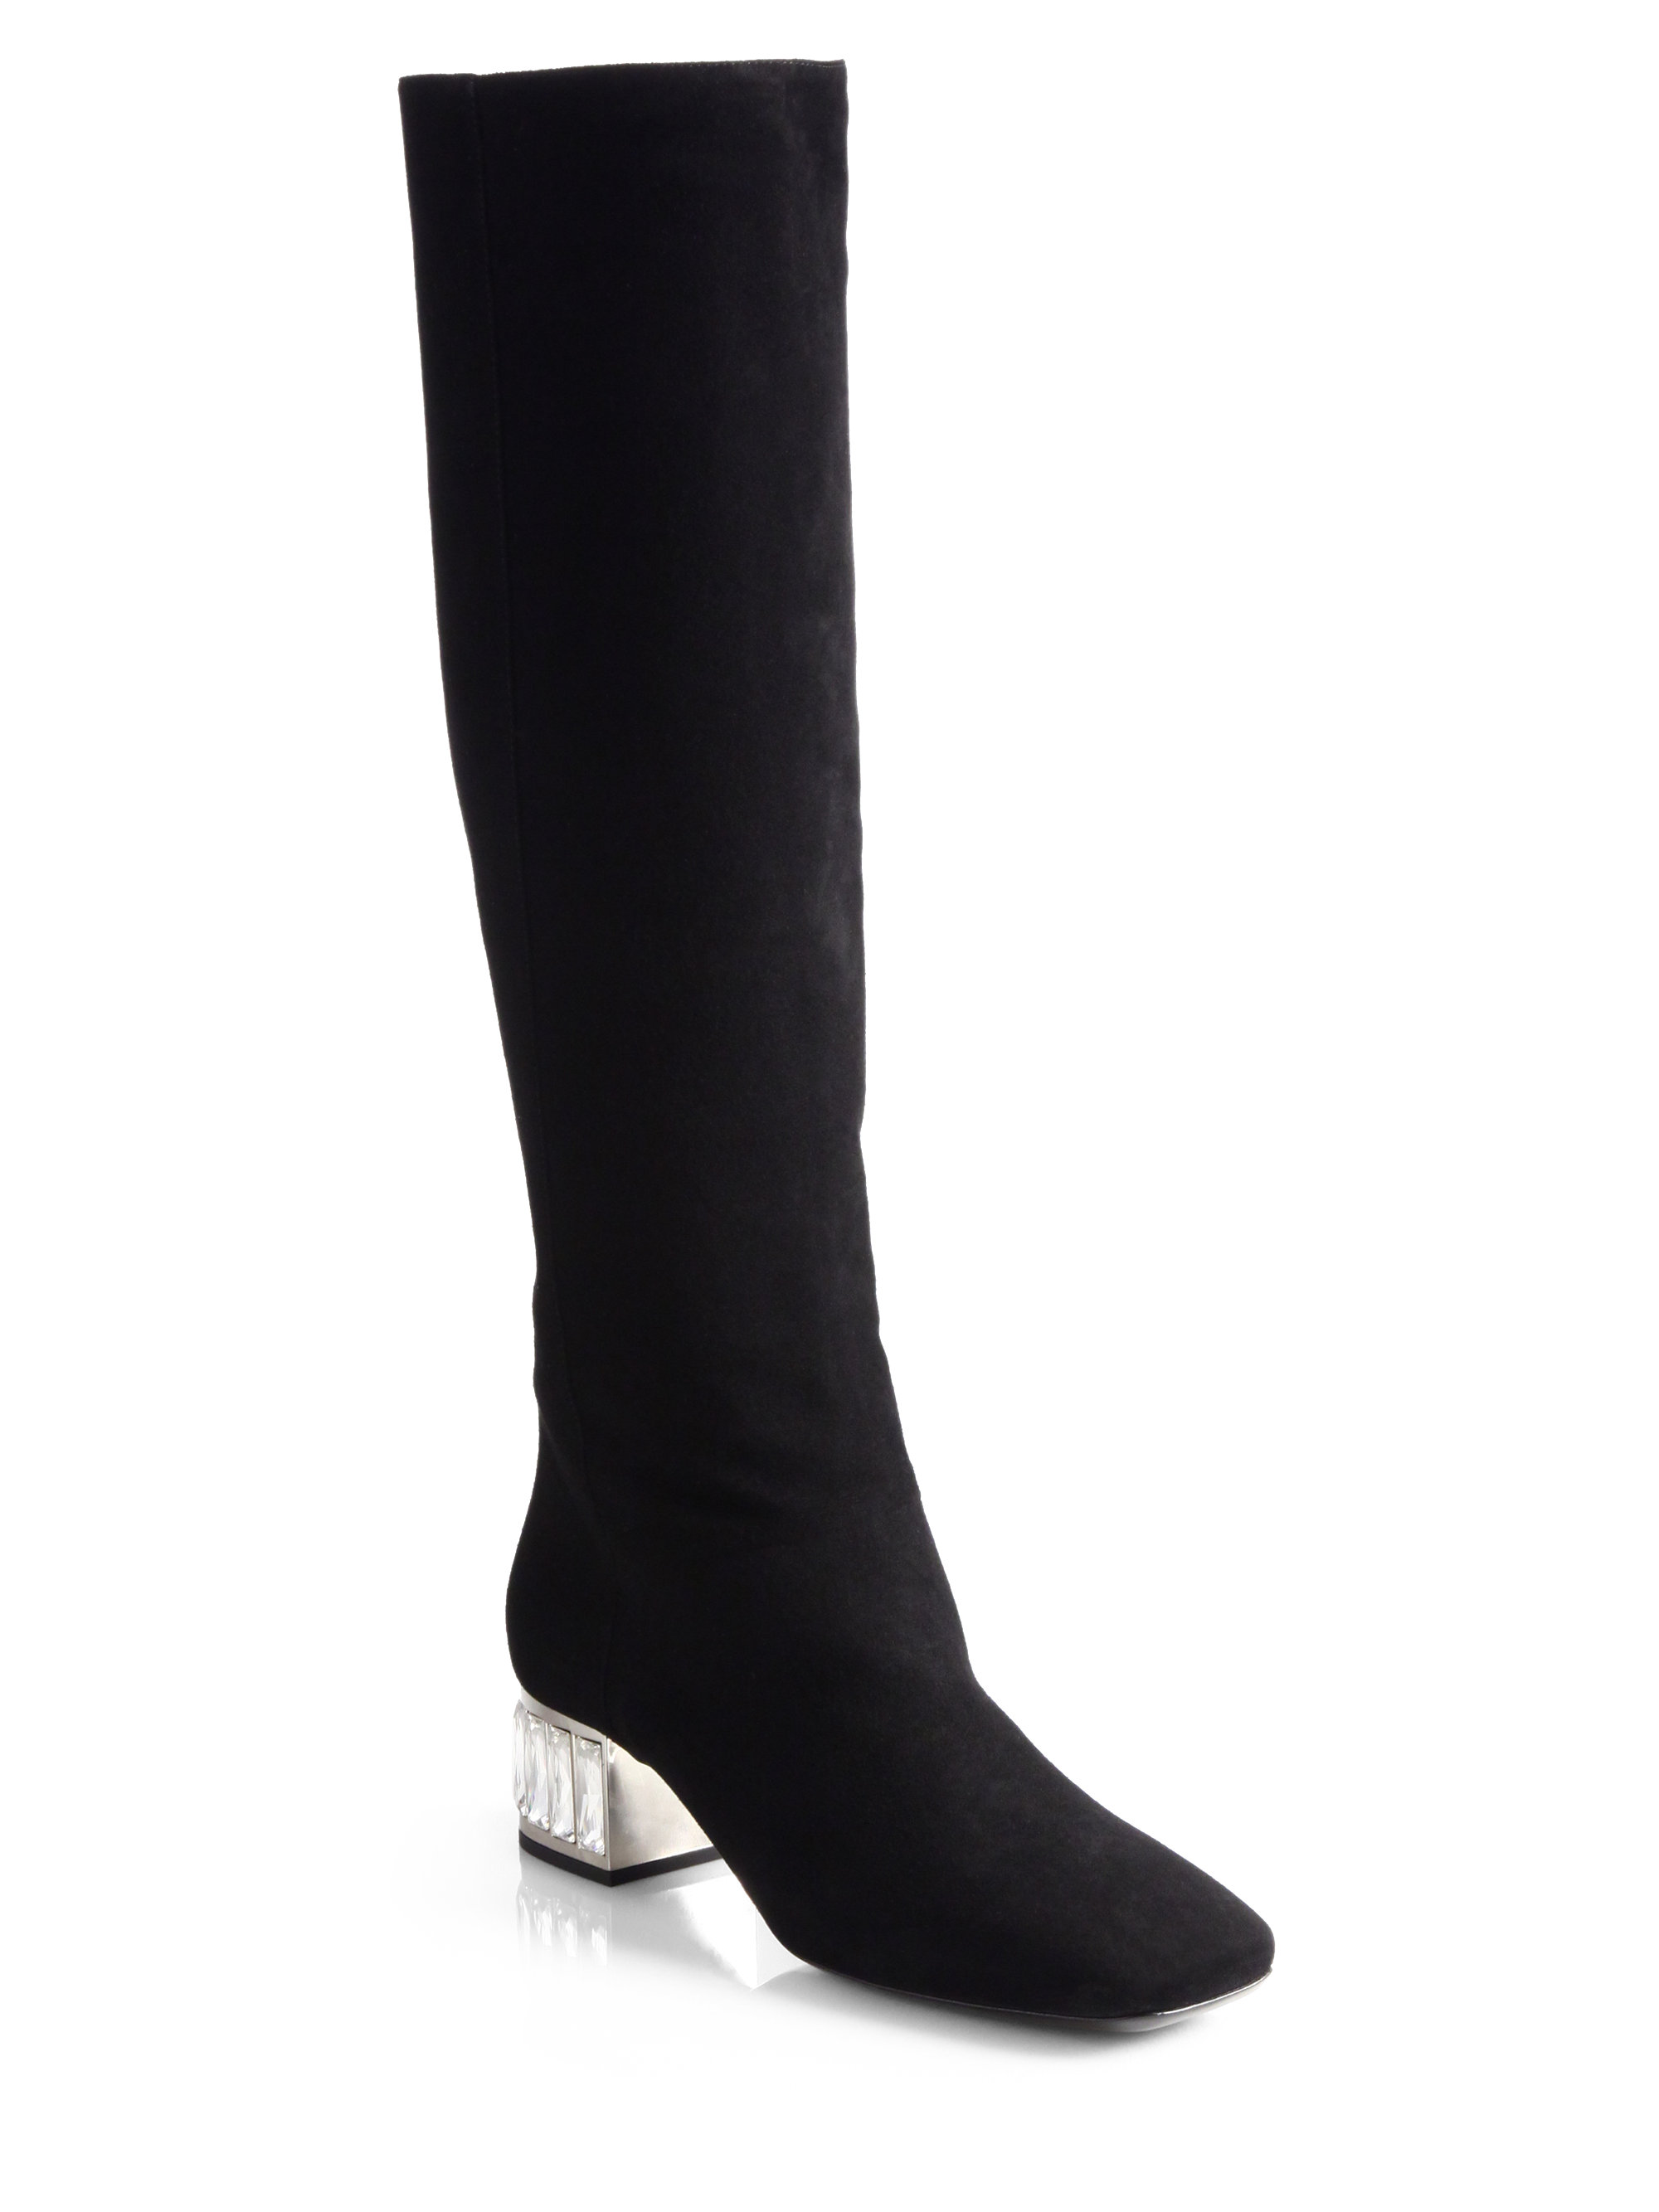 Miu Miu Black Long Boots qGfiiok